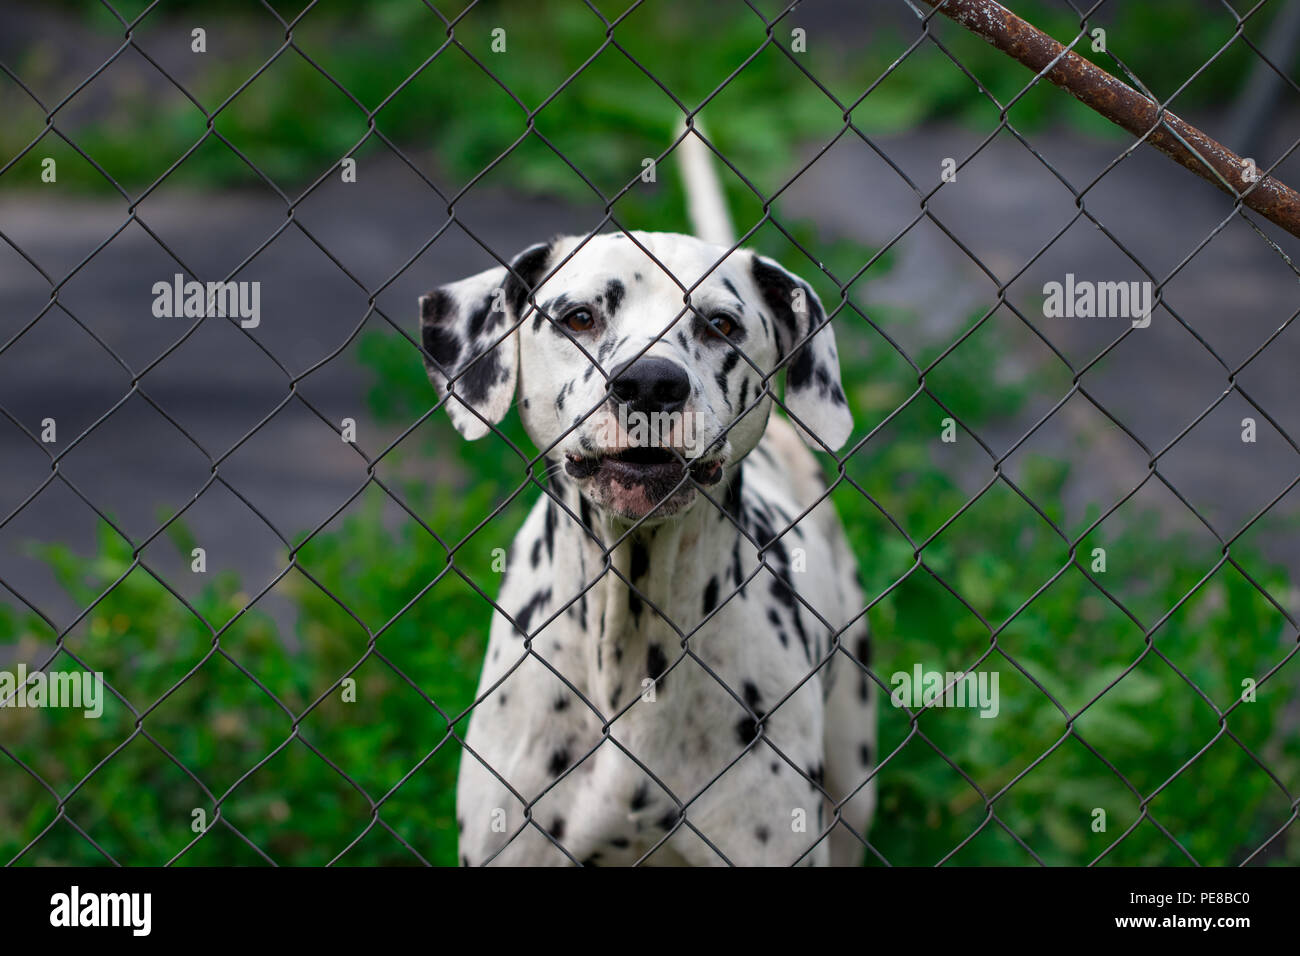 dog behind the fence in the cage looks at will, the protection of animals. Stock Photo